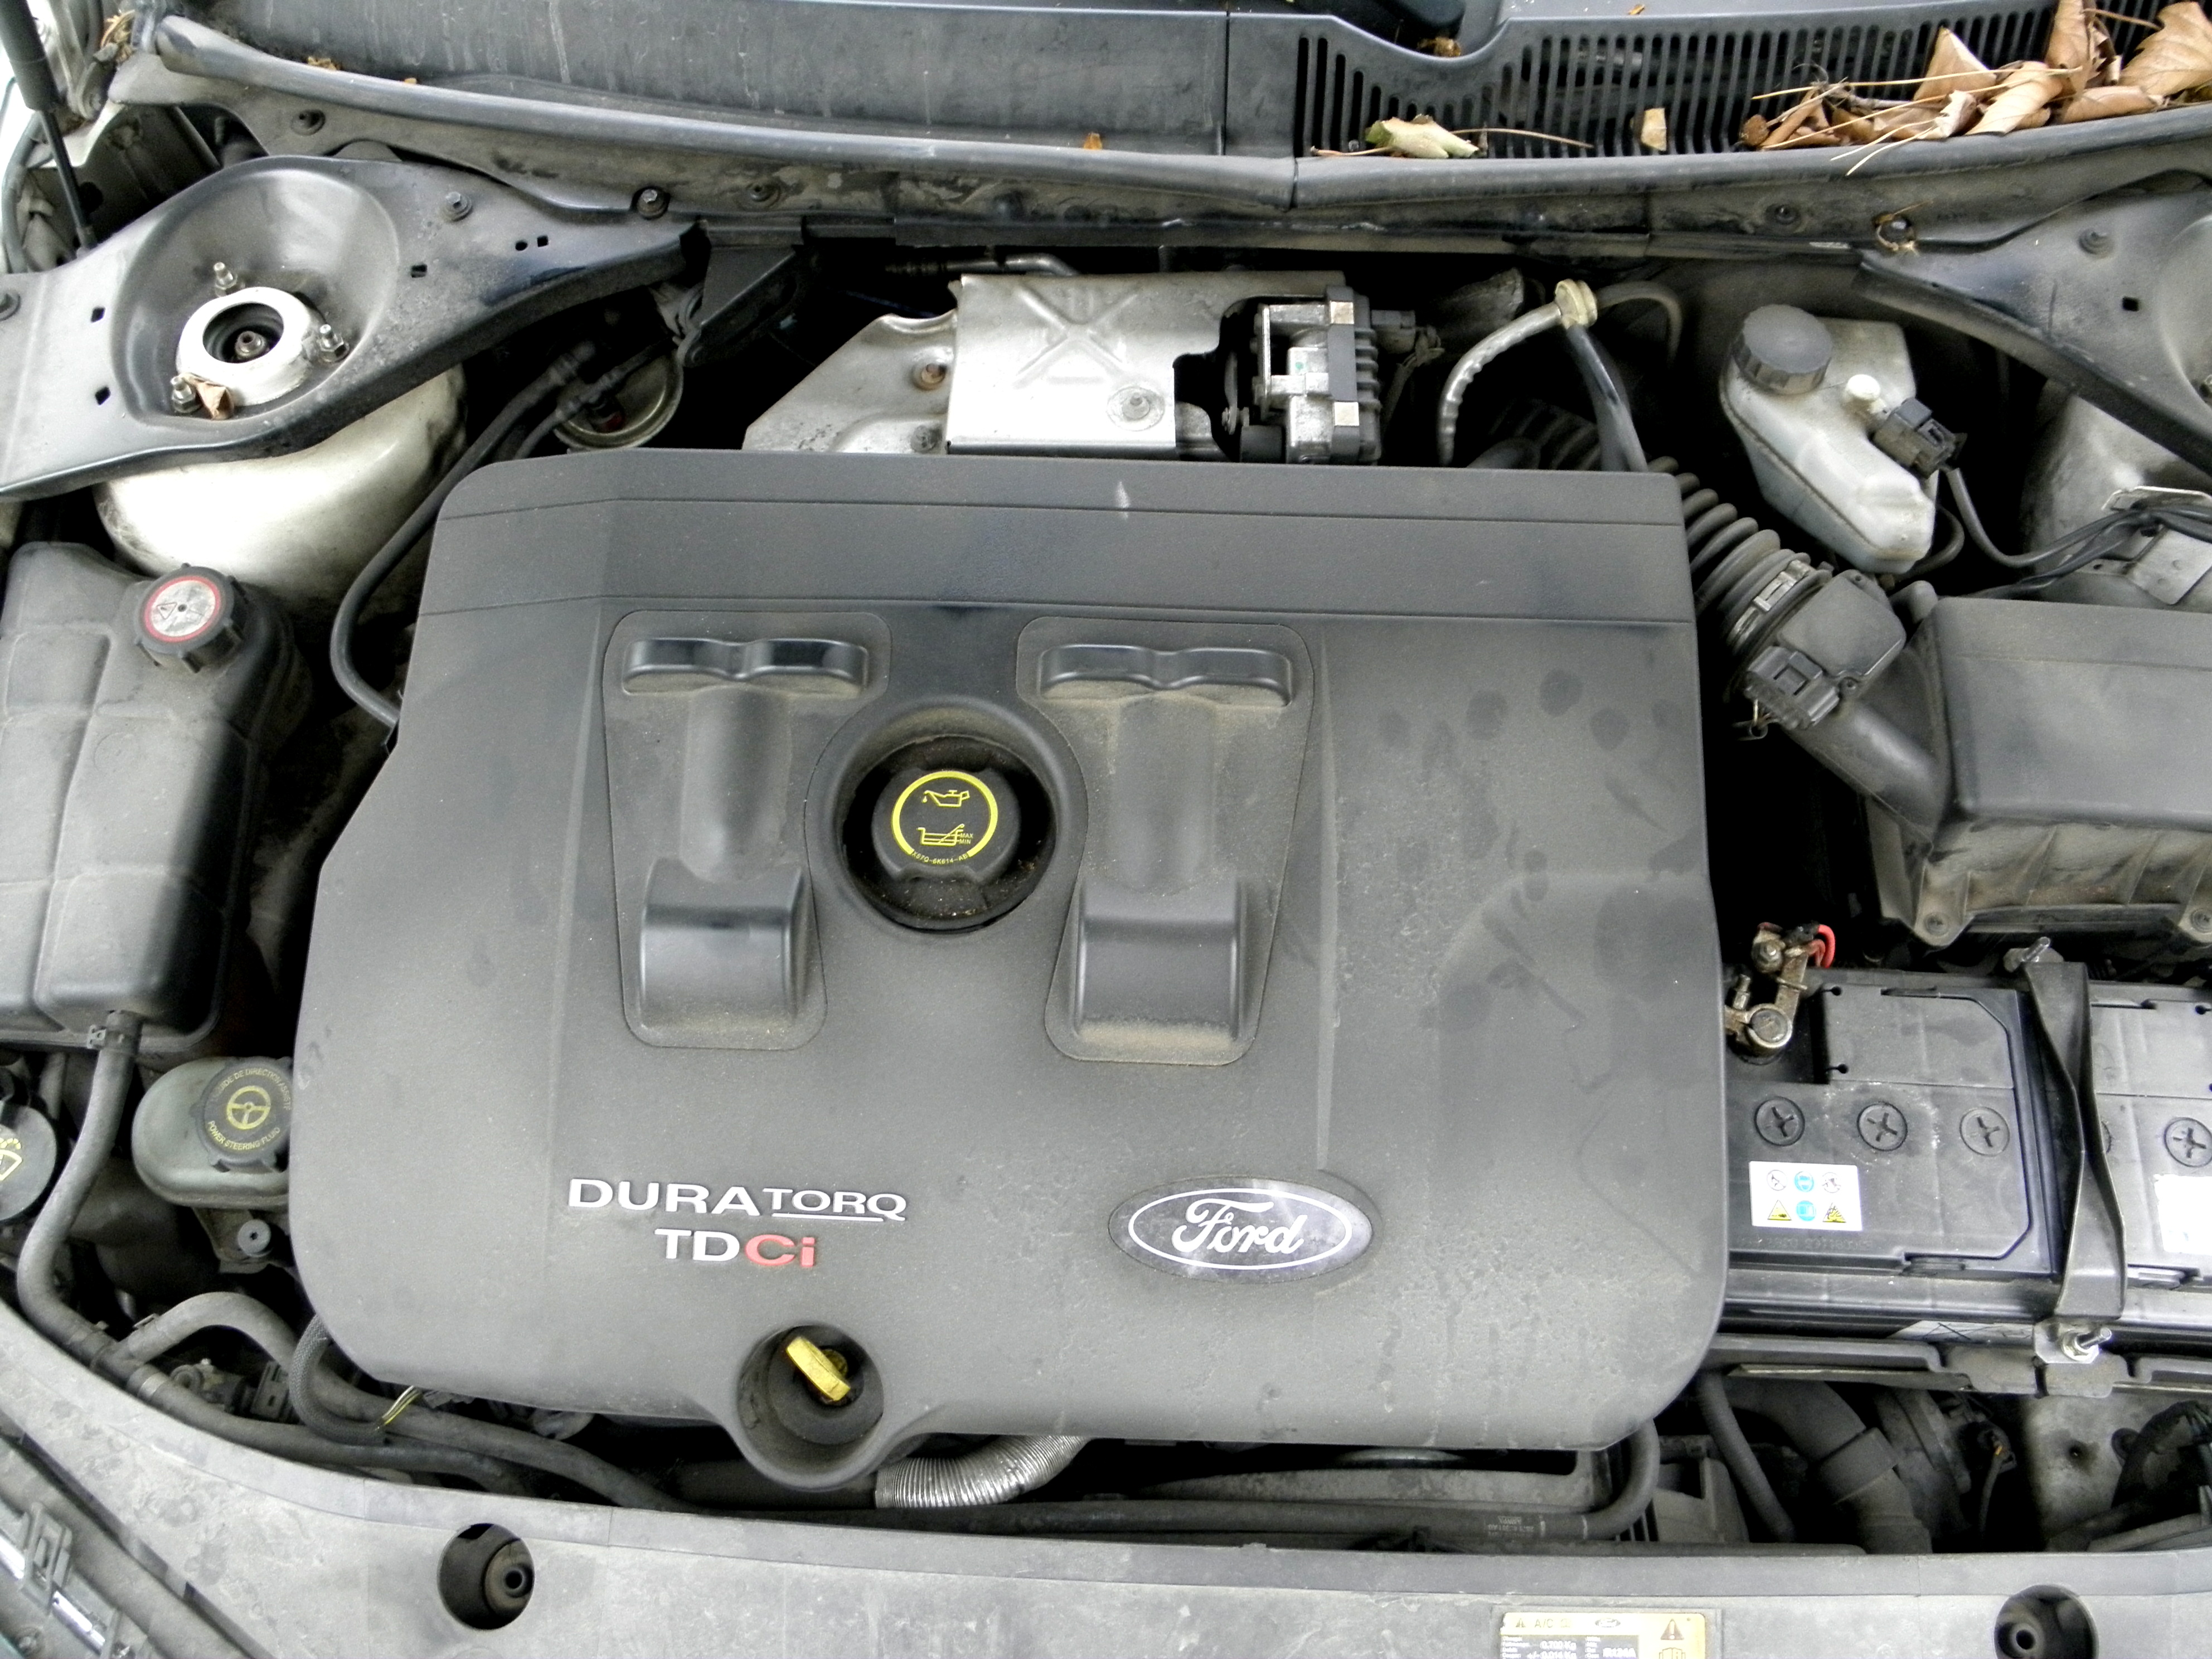 Ford Duratorq Engine